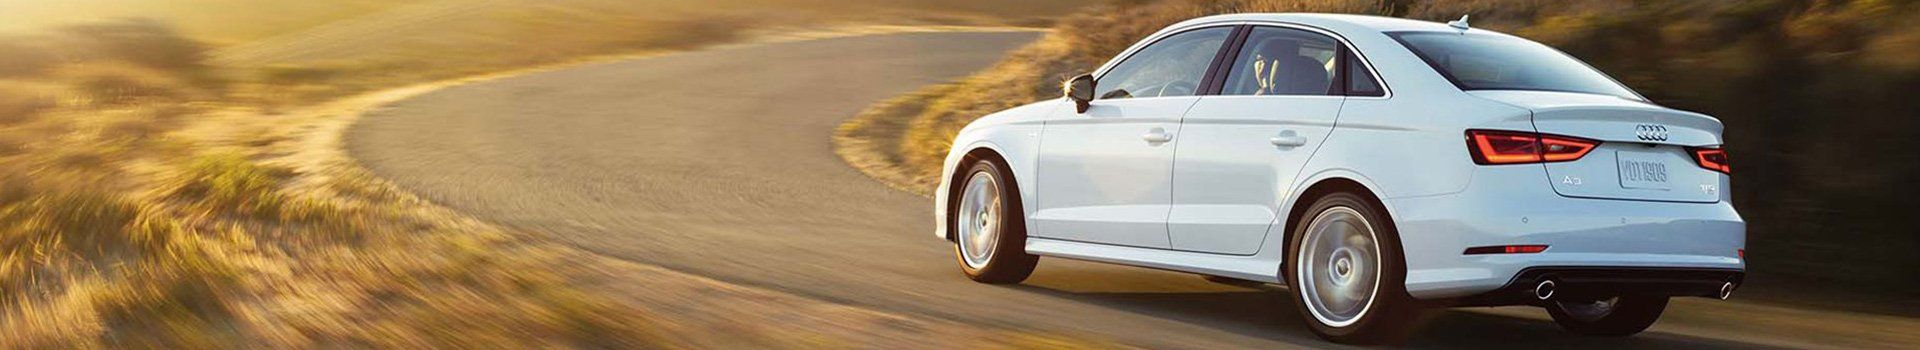 Buy Genuine Audi OEM Parts Online Audi Bernardi Parts - Audi oem parts